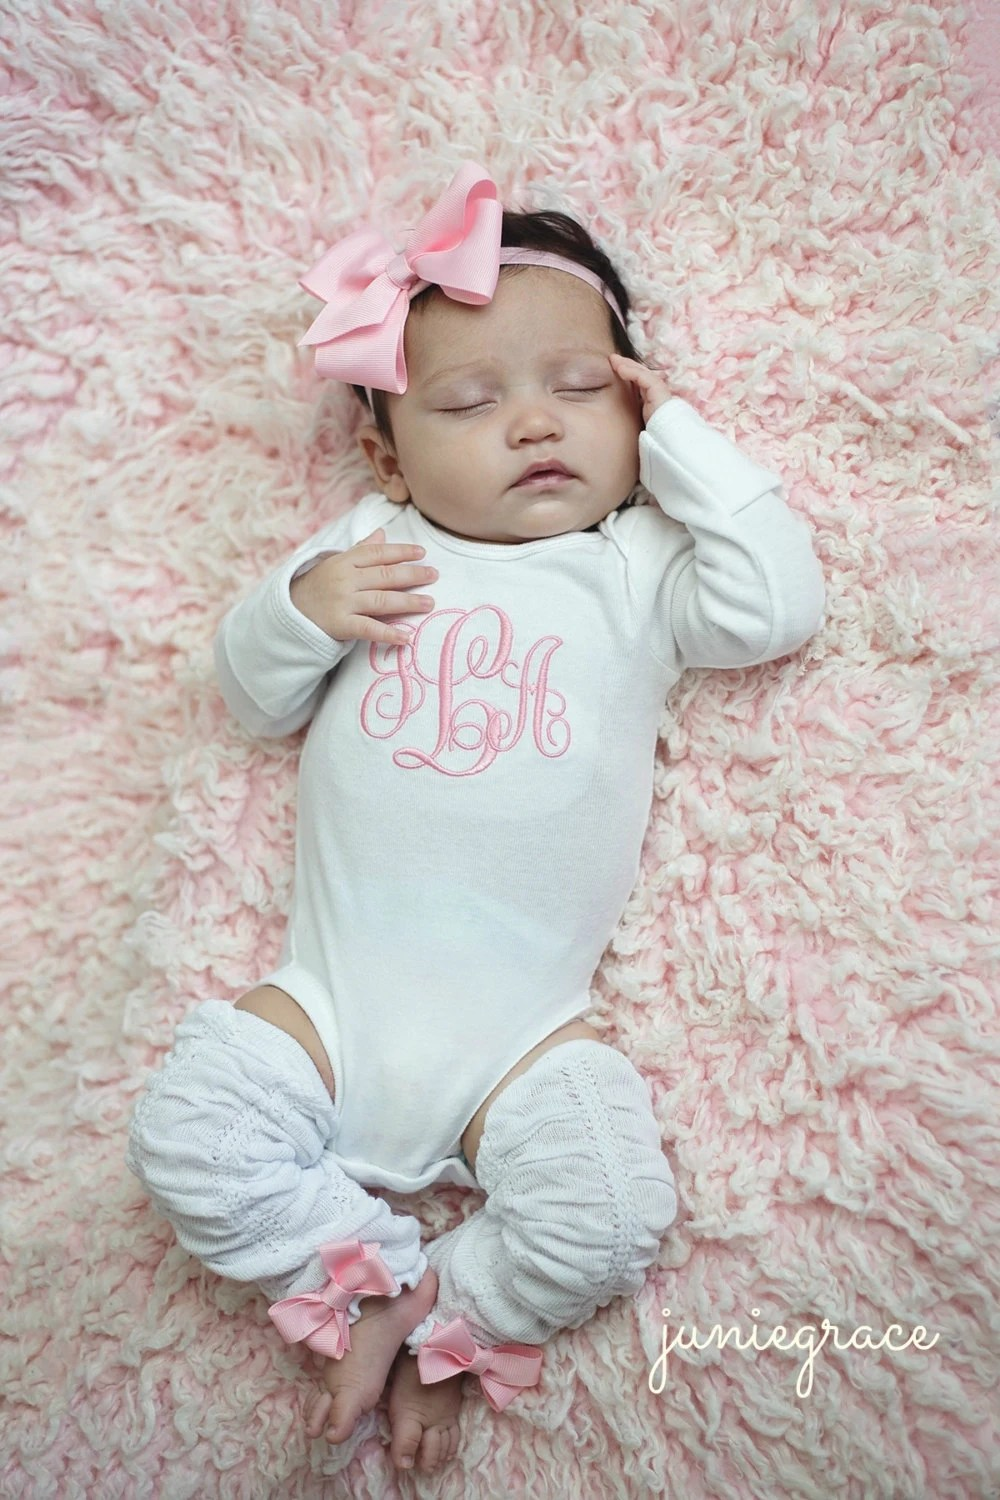 Baby Girl Coming Home Outfit Baby Girl Clothes Baby Girl Gift